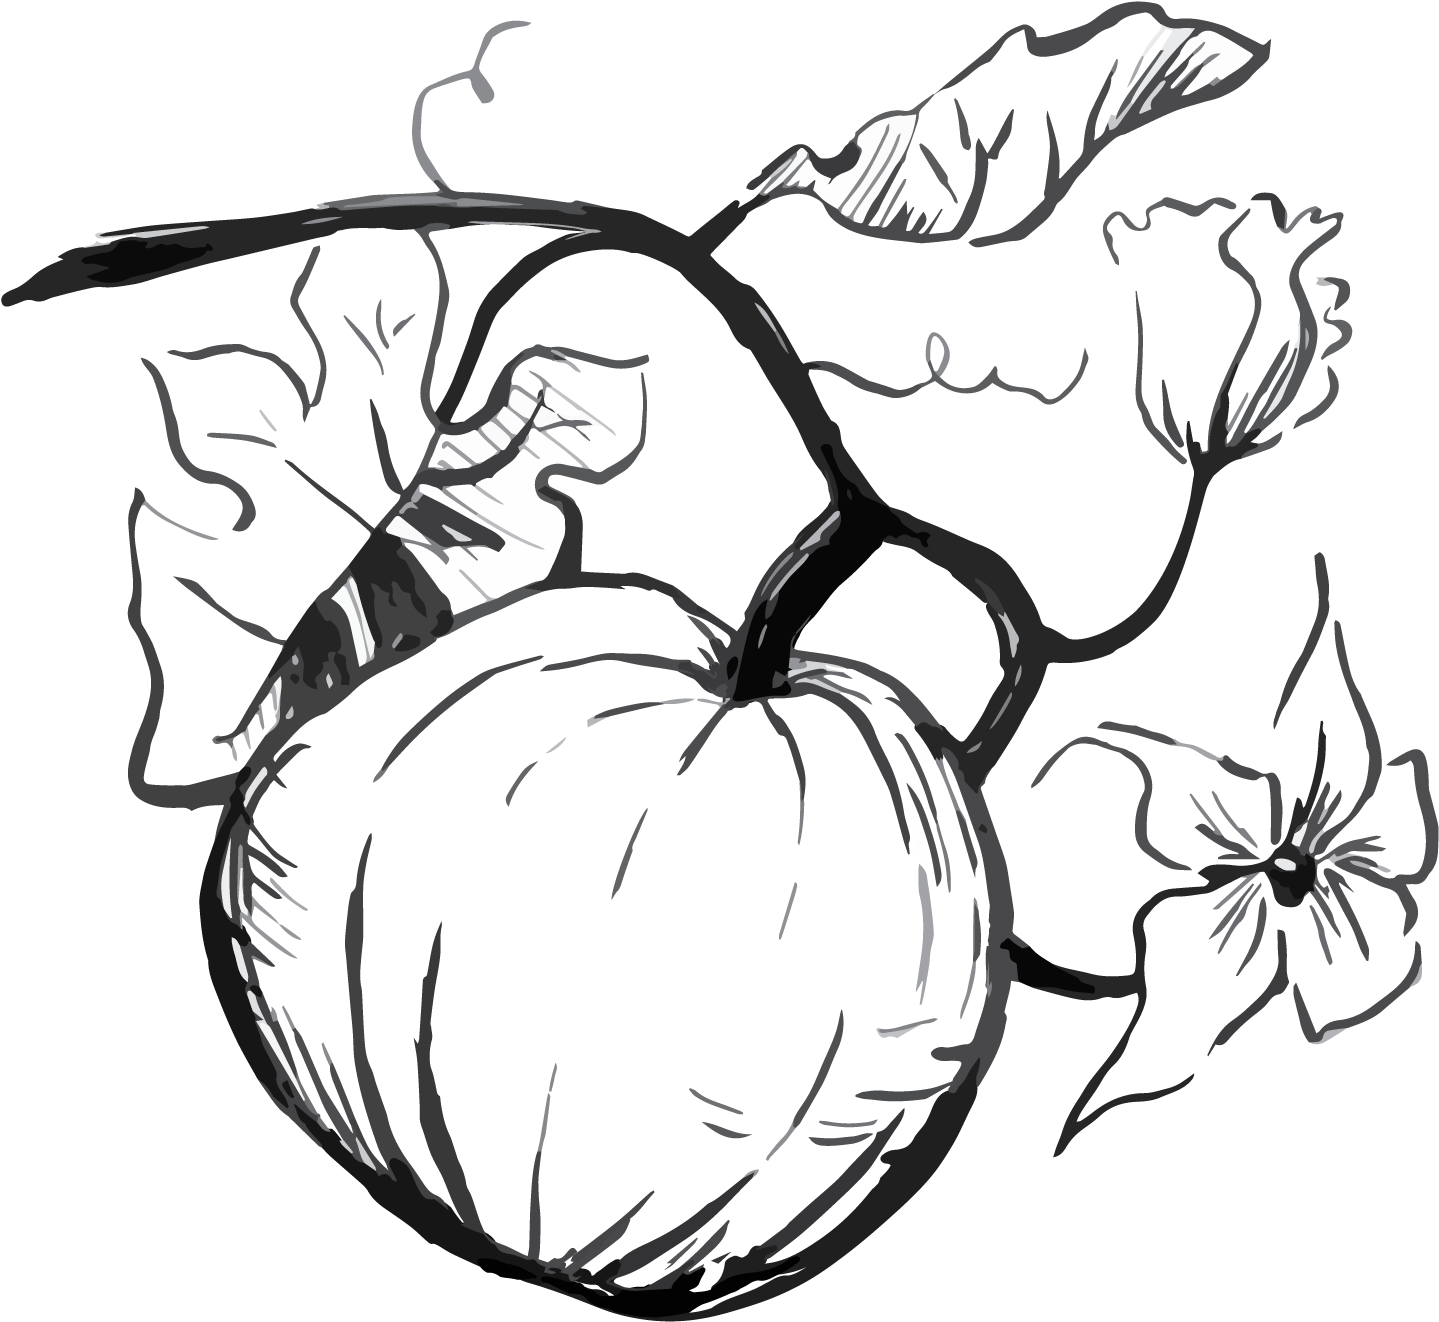 Bay drawing black and white. Download half moon pumpkin